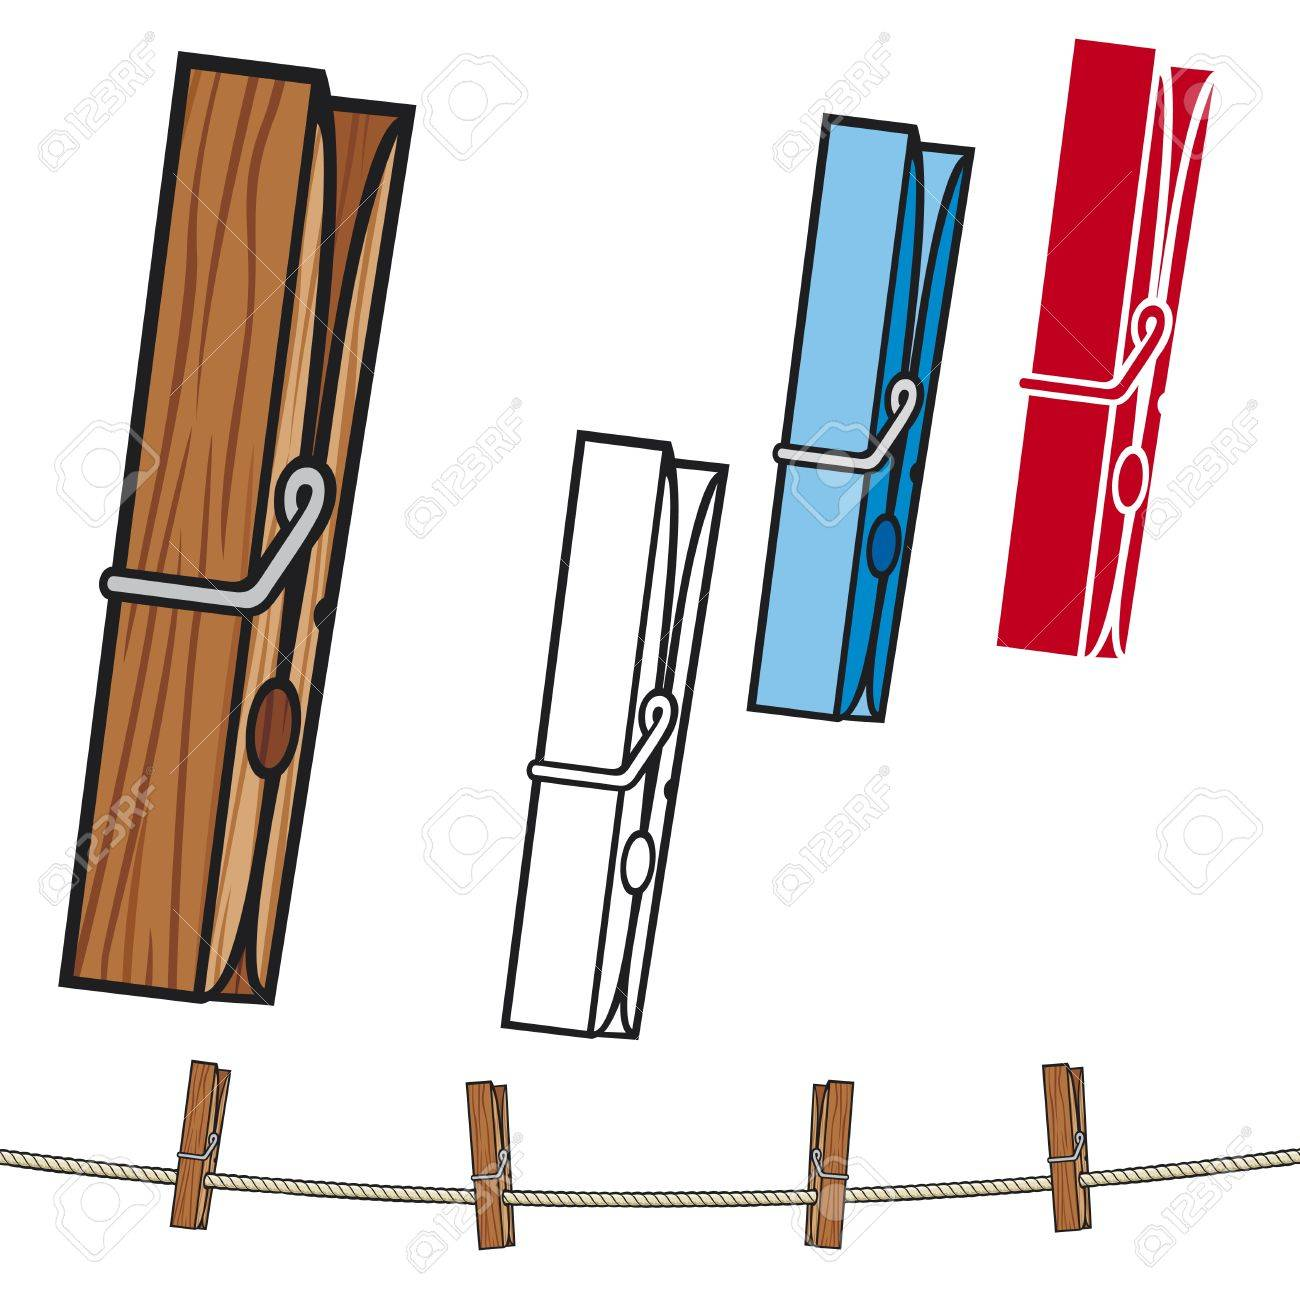 clothespin  clothespin and rope, clothes pegs Stock Vector - 23115864